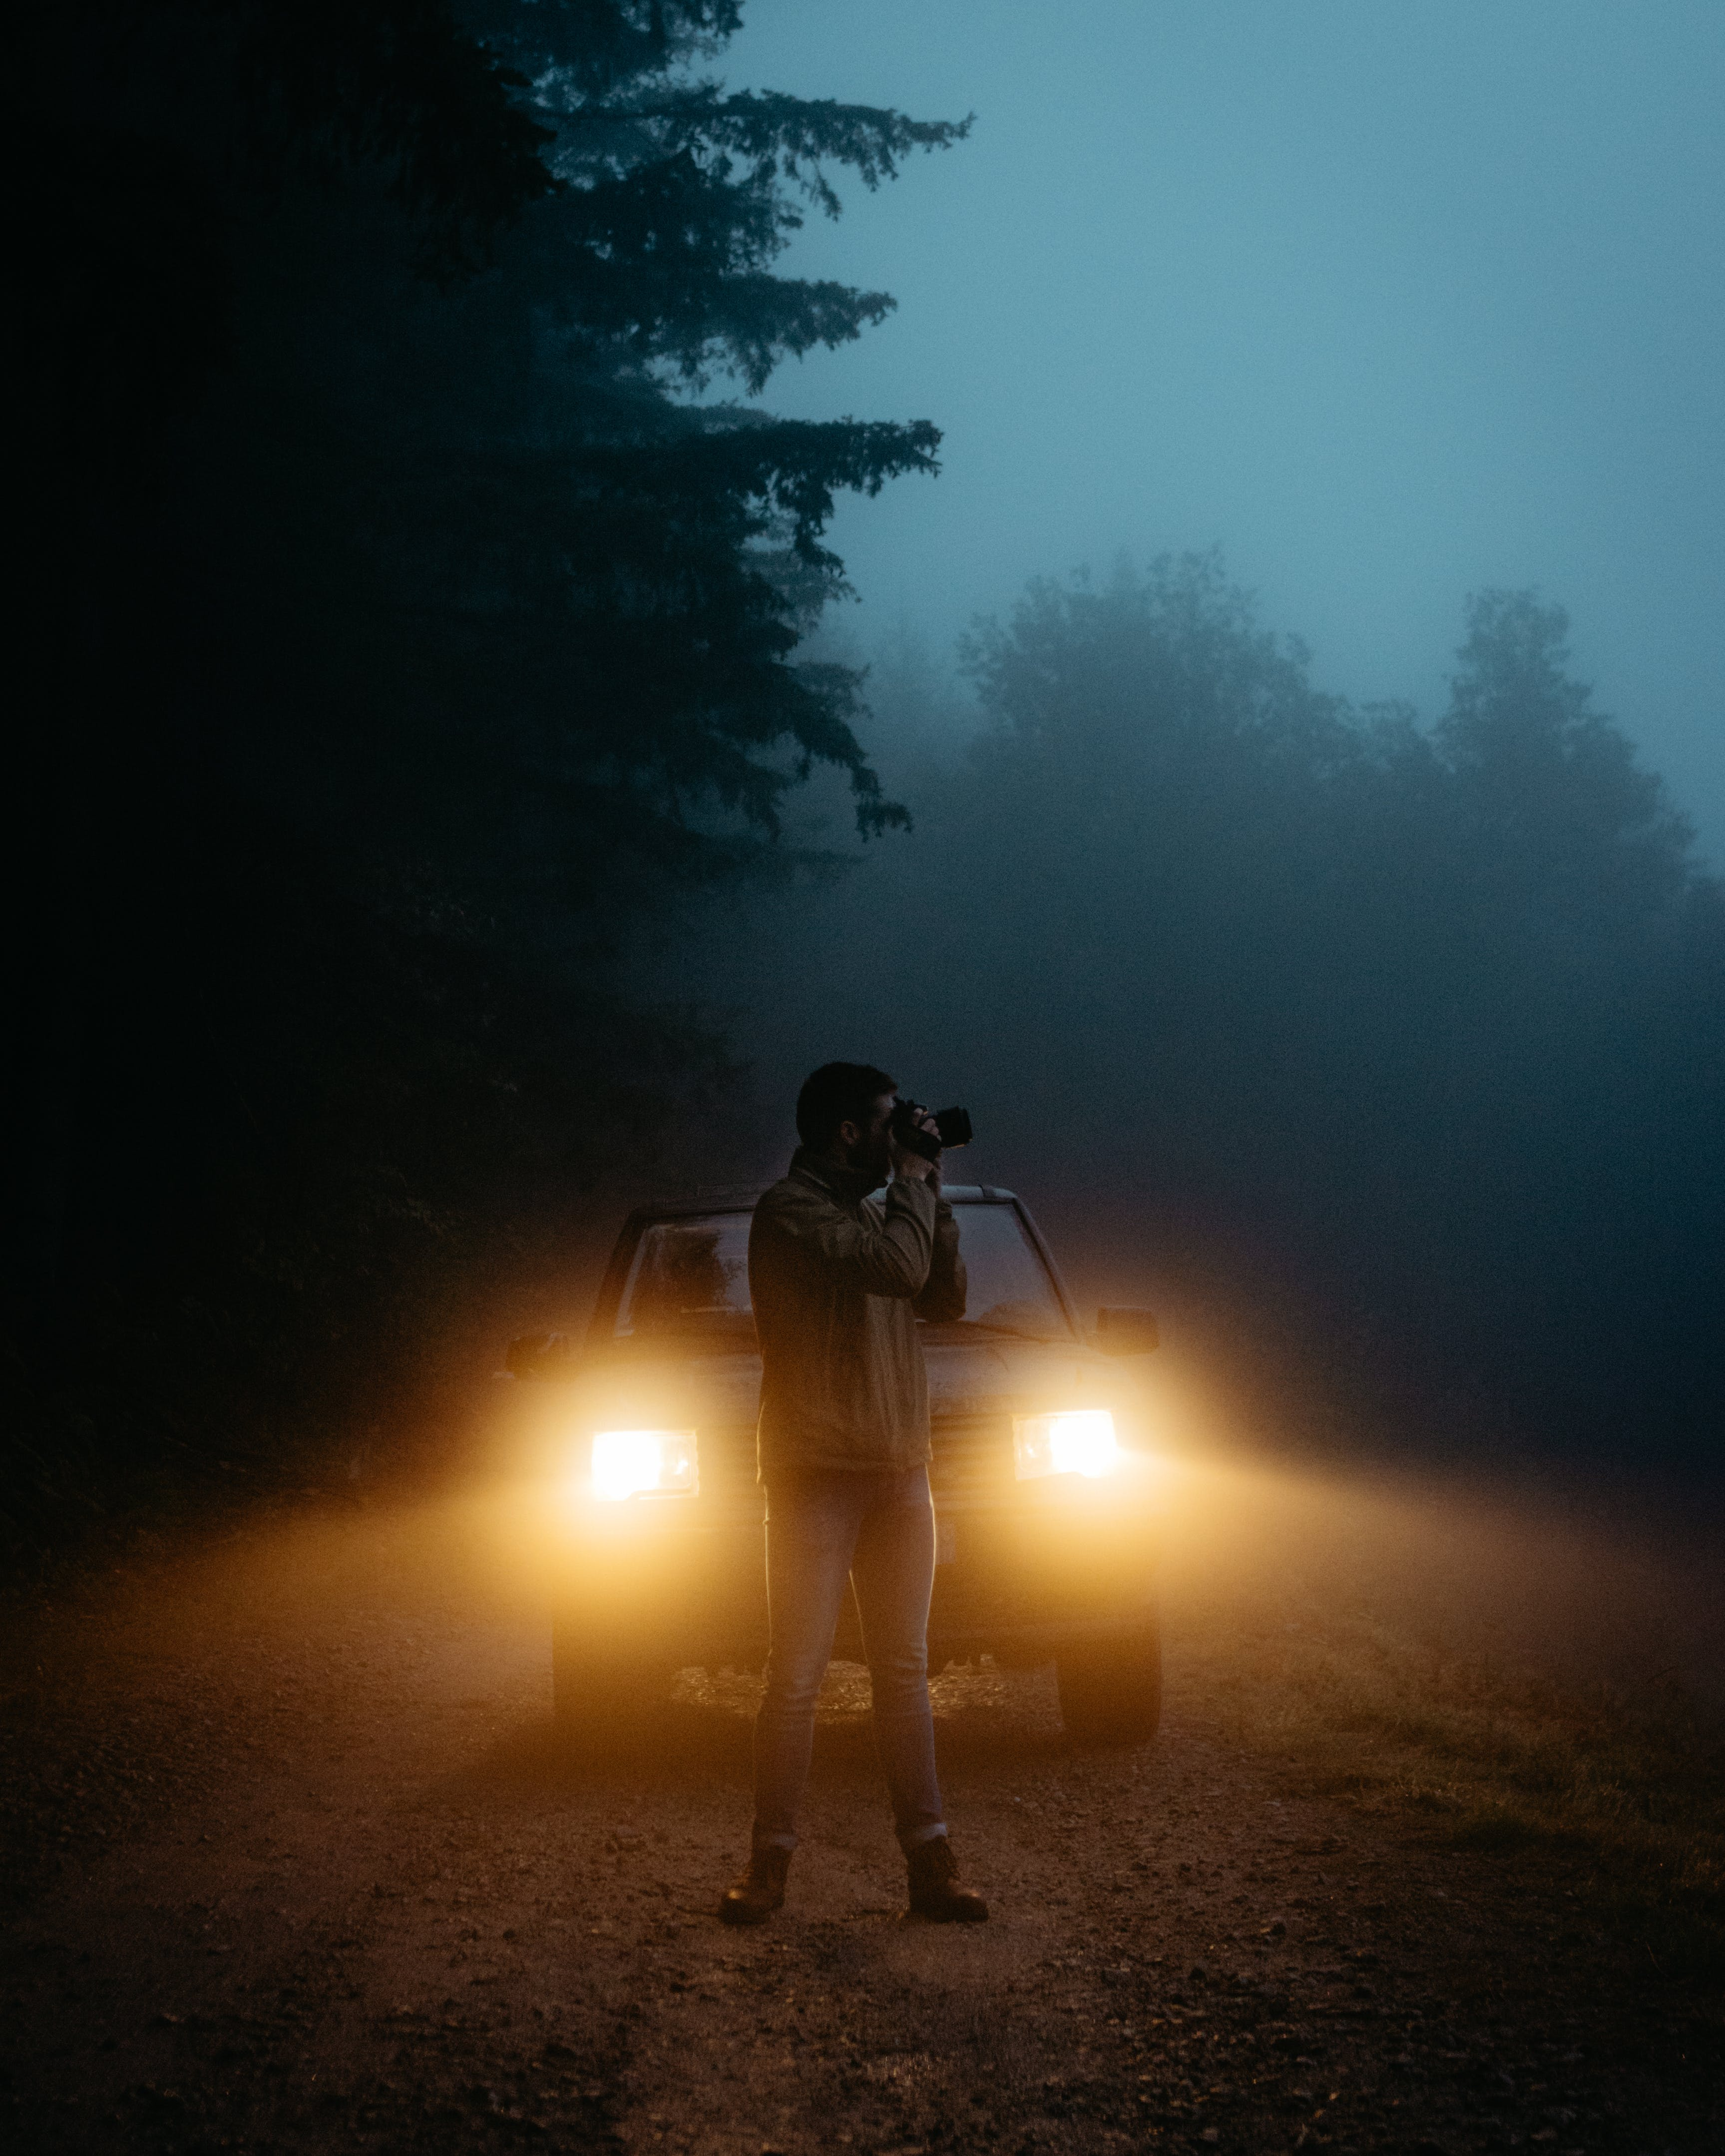 Man Taking Photo in Front of Vehicle